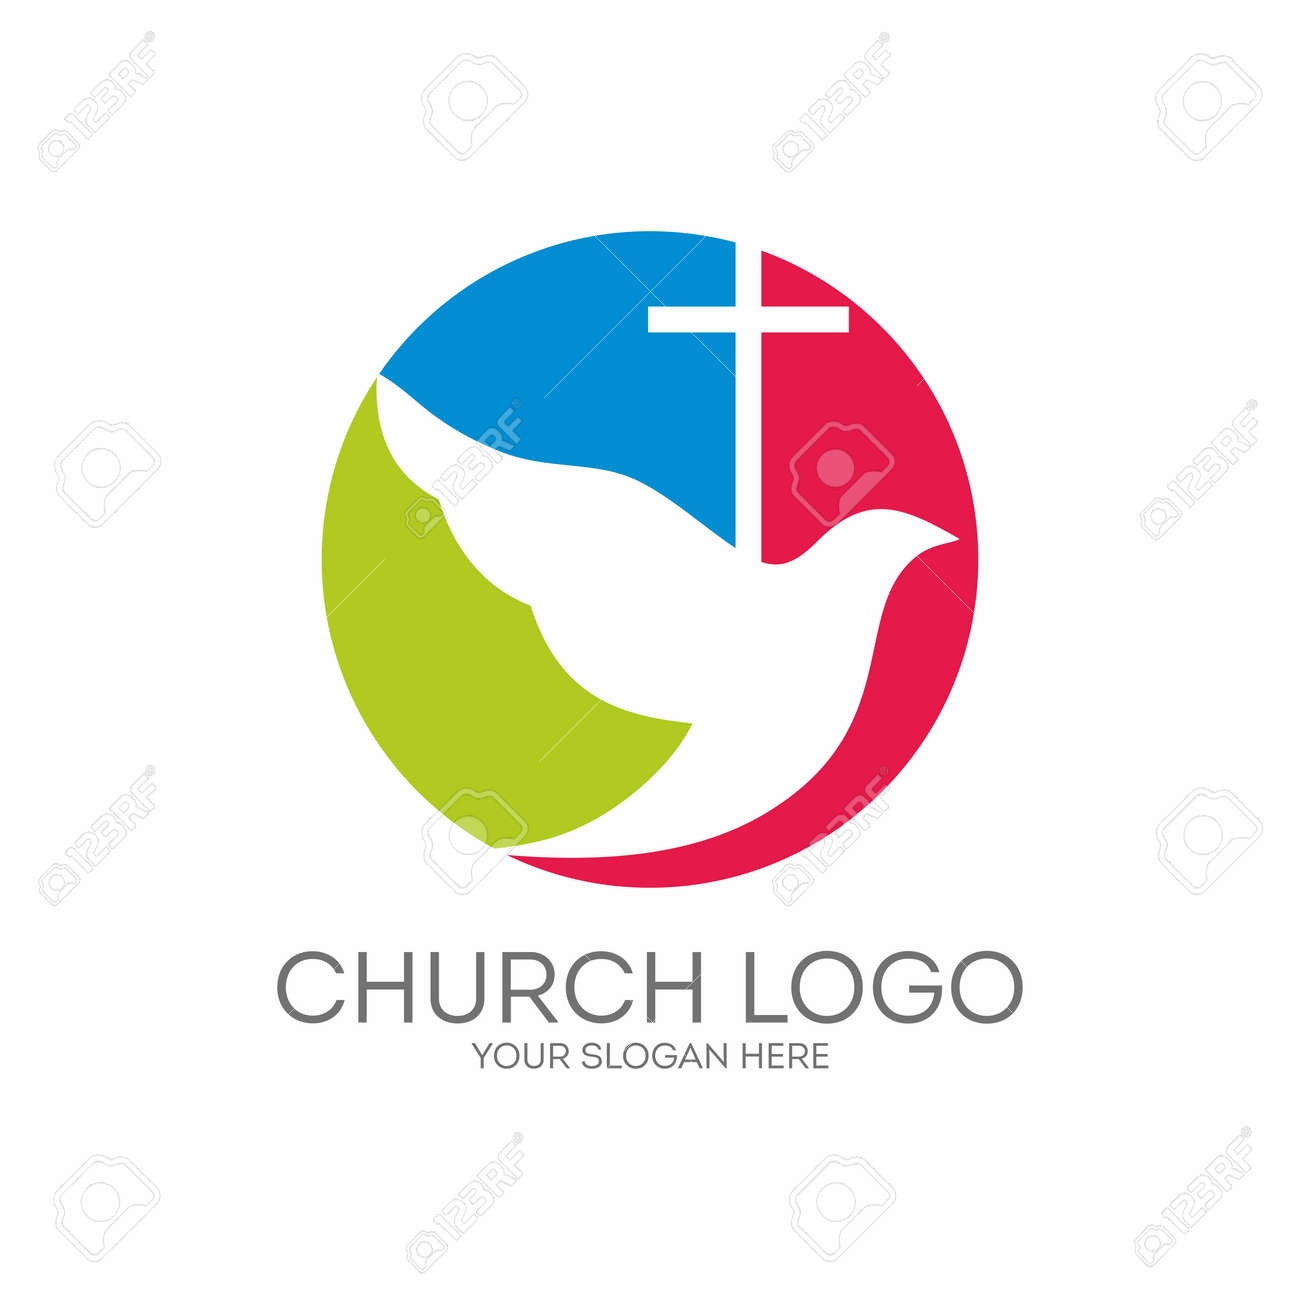 Church logo round dove holy spirit and cross royalty free church logo round dove holy spirit and cross stock vector 46647689 altavistaventures Images